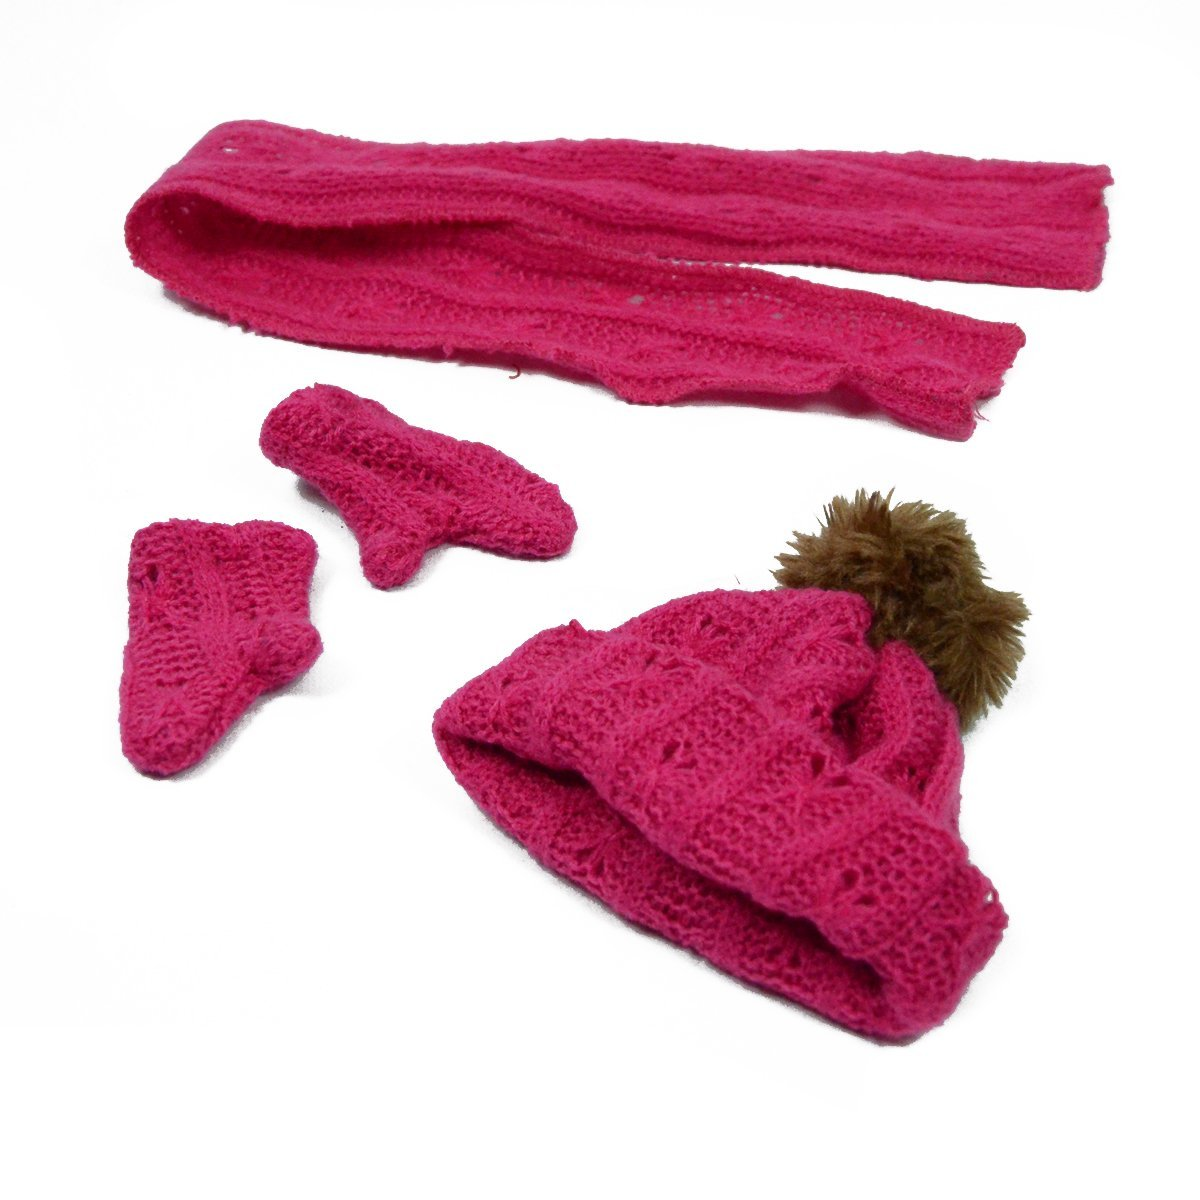 Pink Hat Mittens and Shawl Set for 18 Inch Dolls - American Girl Doll Clothes, 18 Inch Doll Accessories